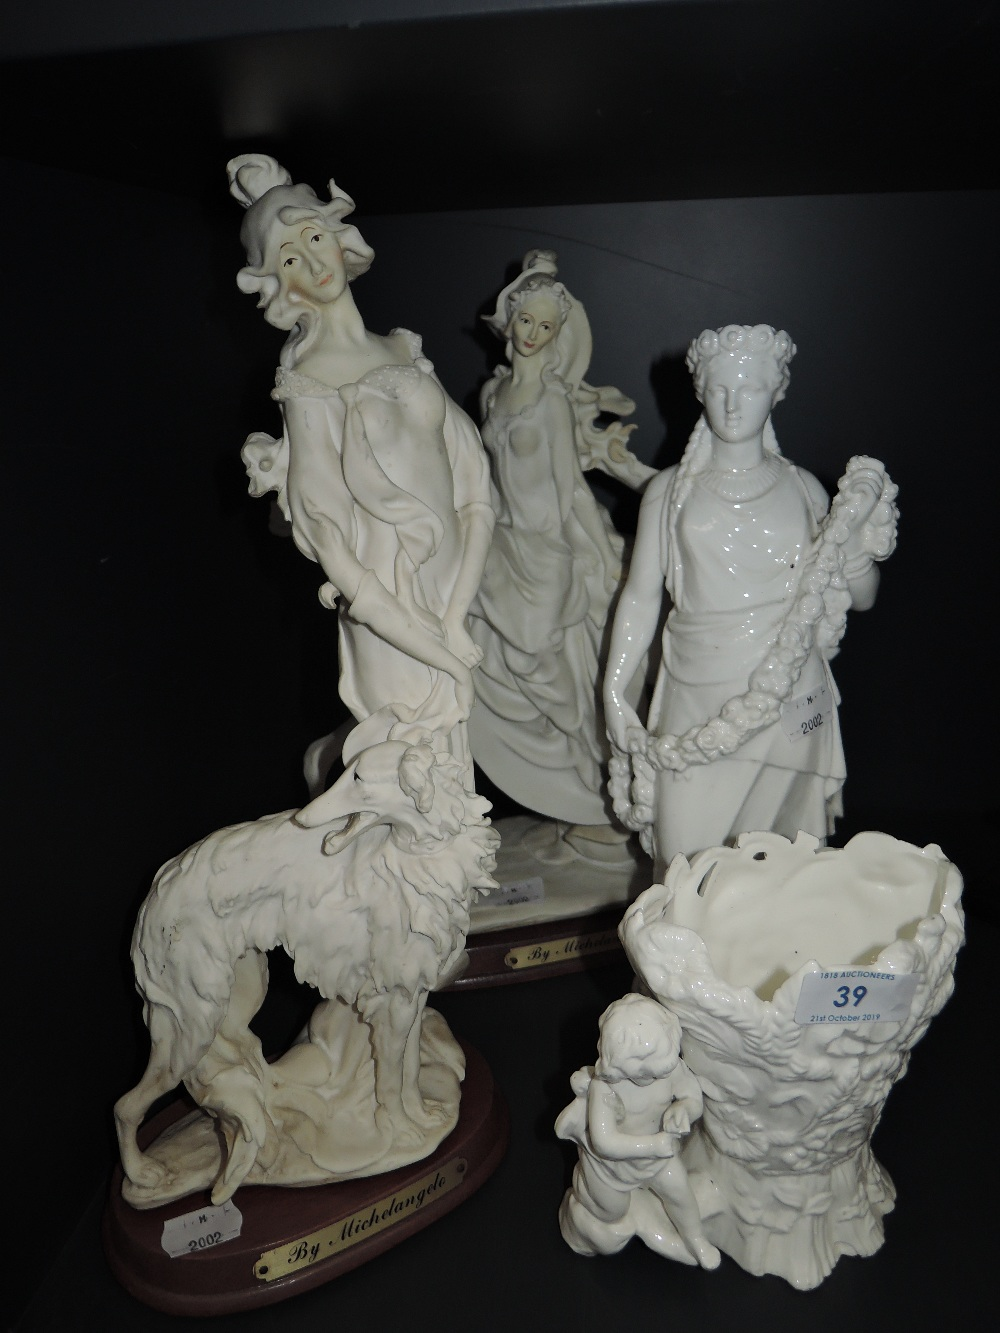 Lot 39 - A selection of figures and figurines